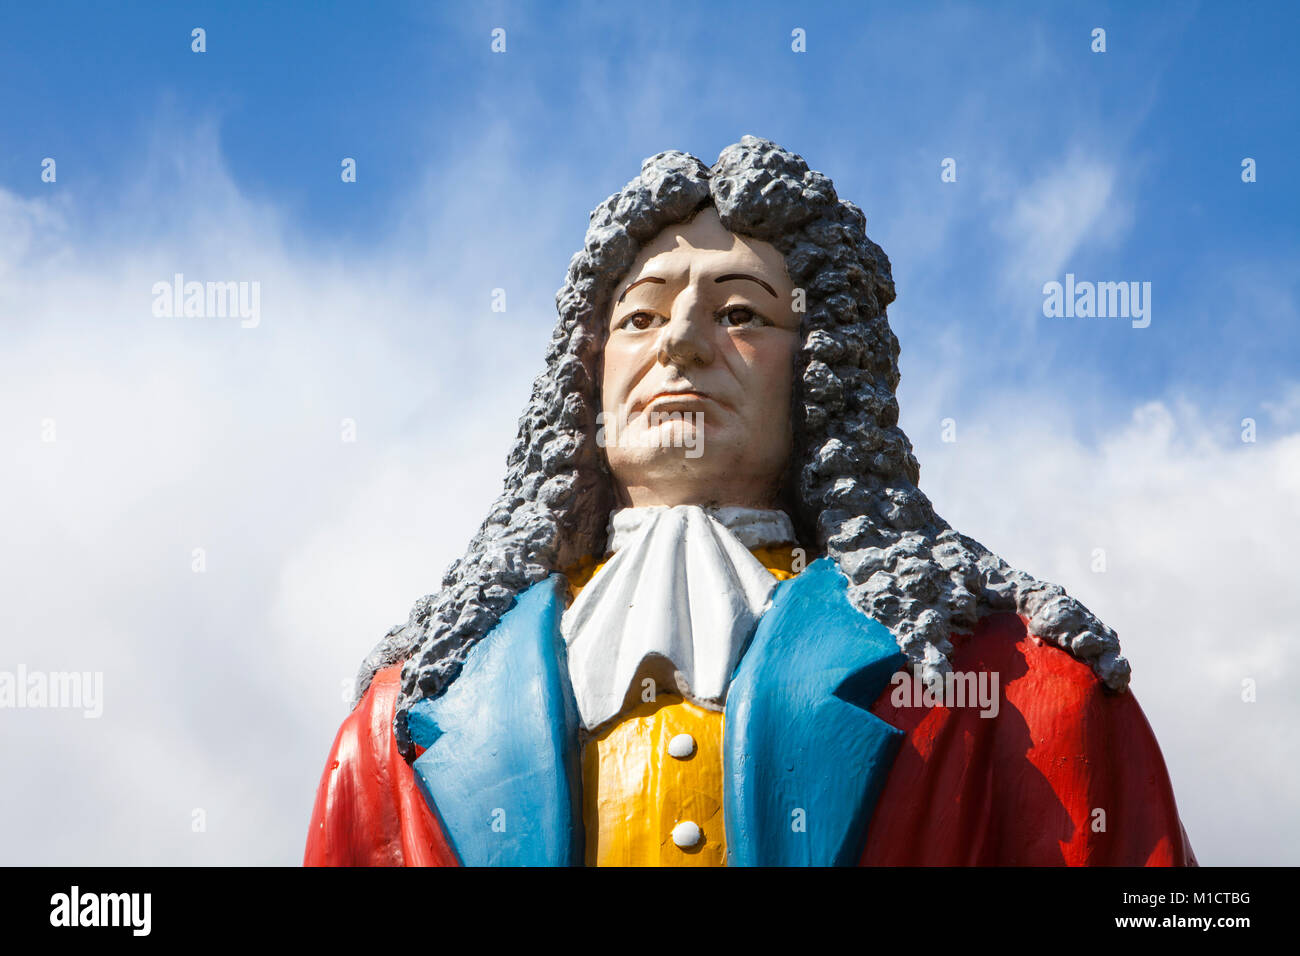 Doctor Eisenbarth or Johann Andreas Eisenbarth, 1663 –1727,  Hannoversch Münden, Lower Saxony, Germany, - Stock Image